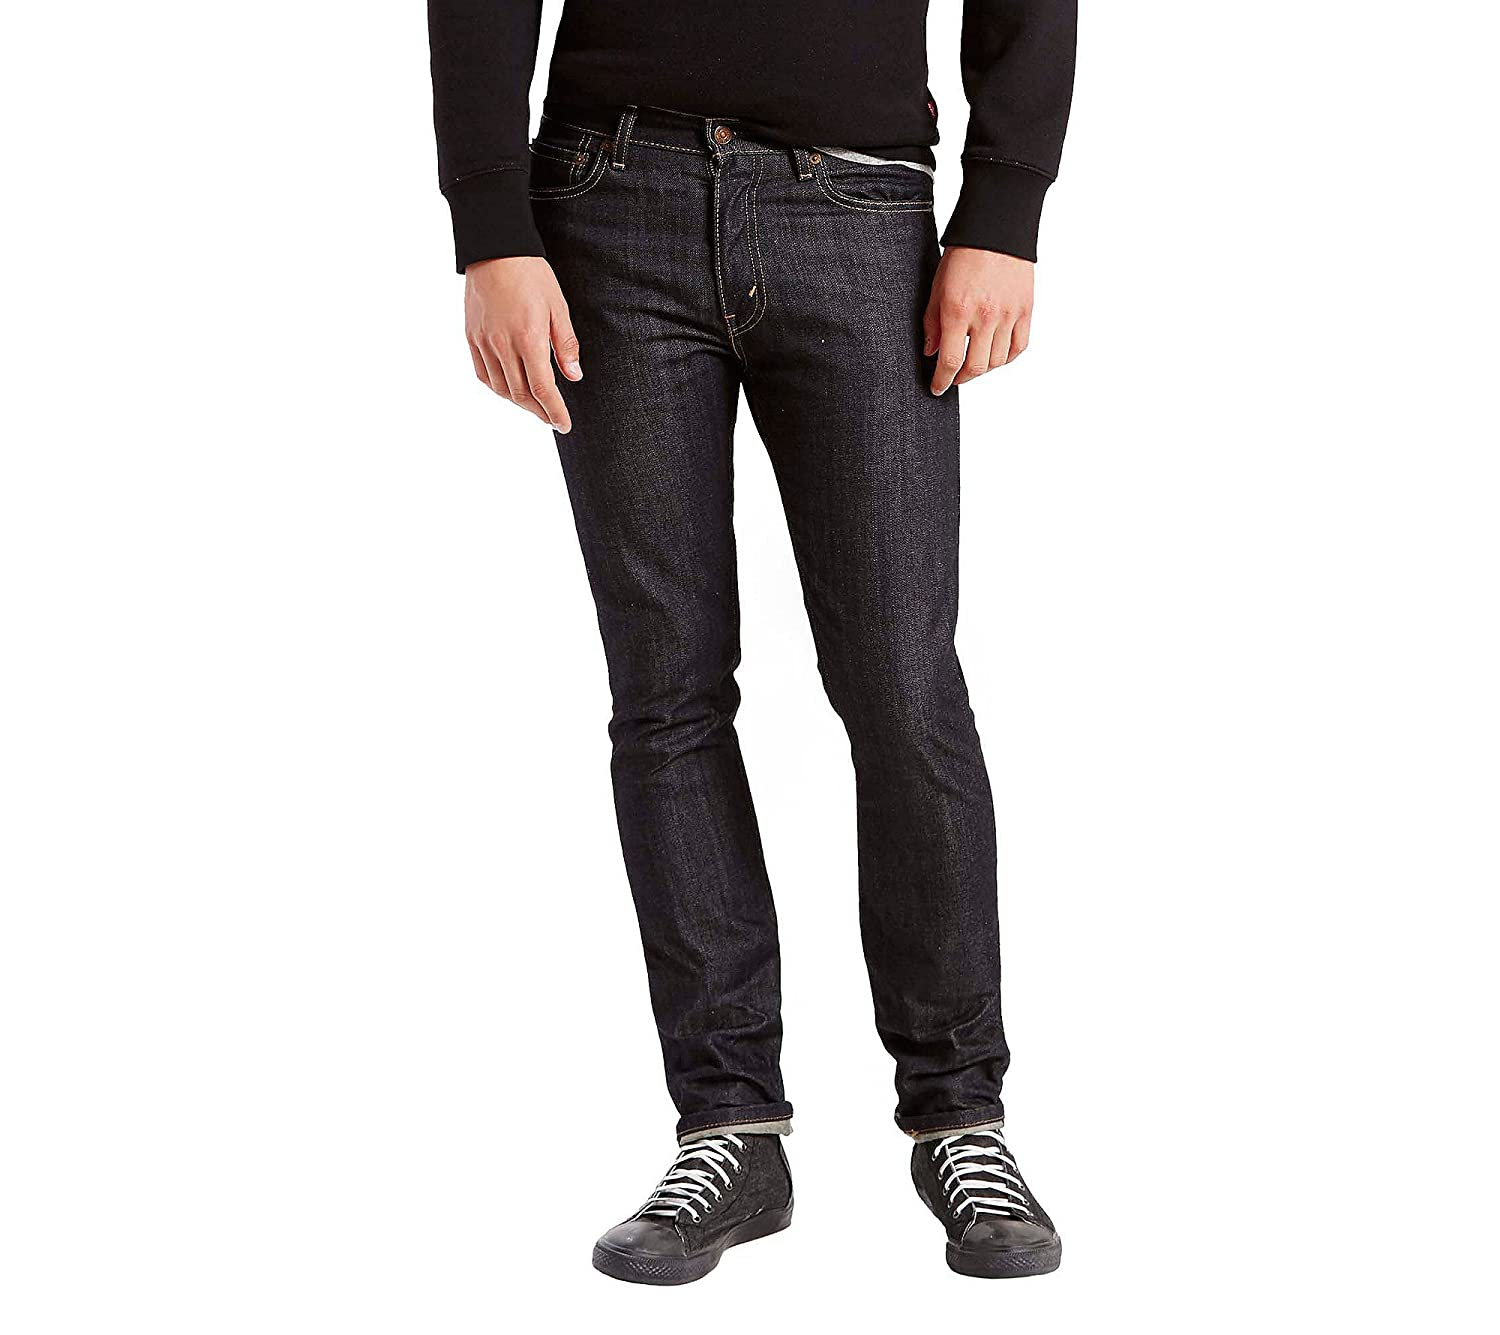 リーバイス510 Skinny Fit Jean B01M8GHTF9 26W x 30L|Rigid Dragon - Stretch Rigid Dragon - Stretch 26W x 30L